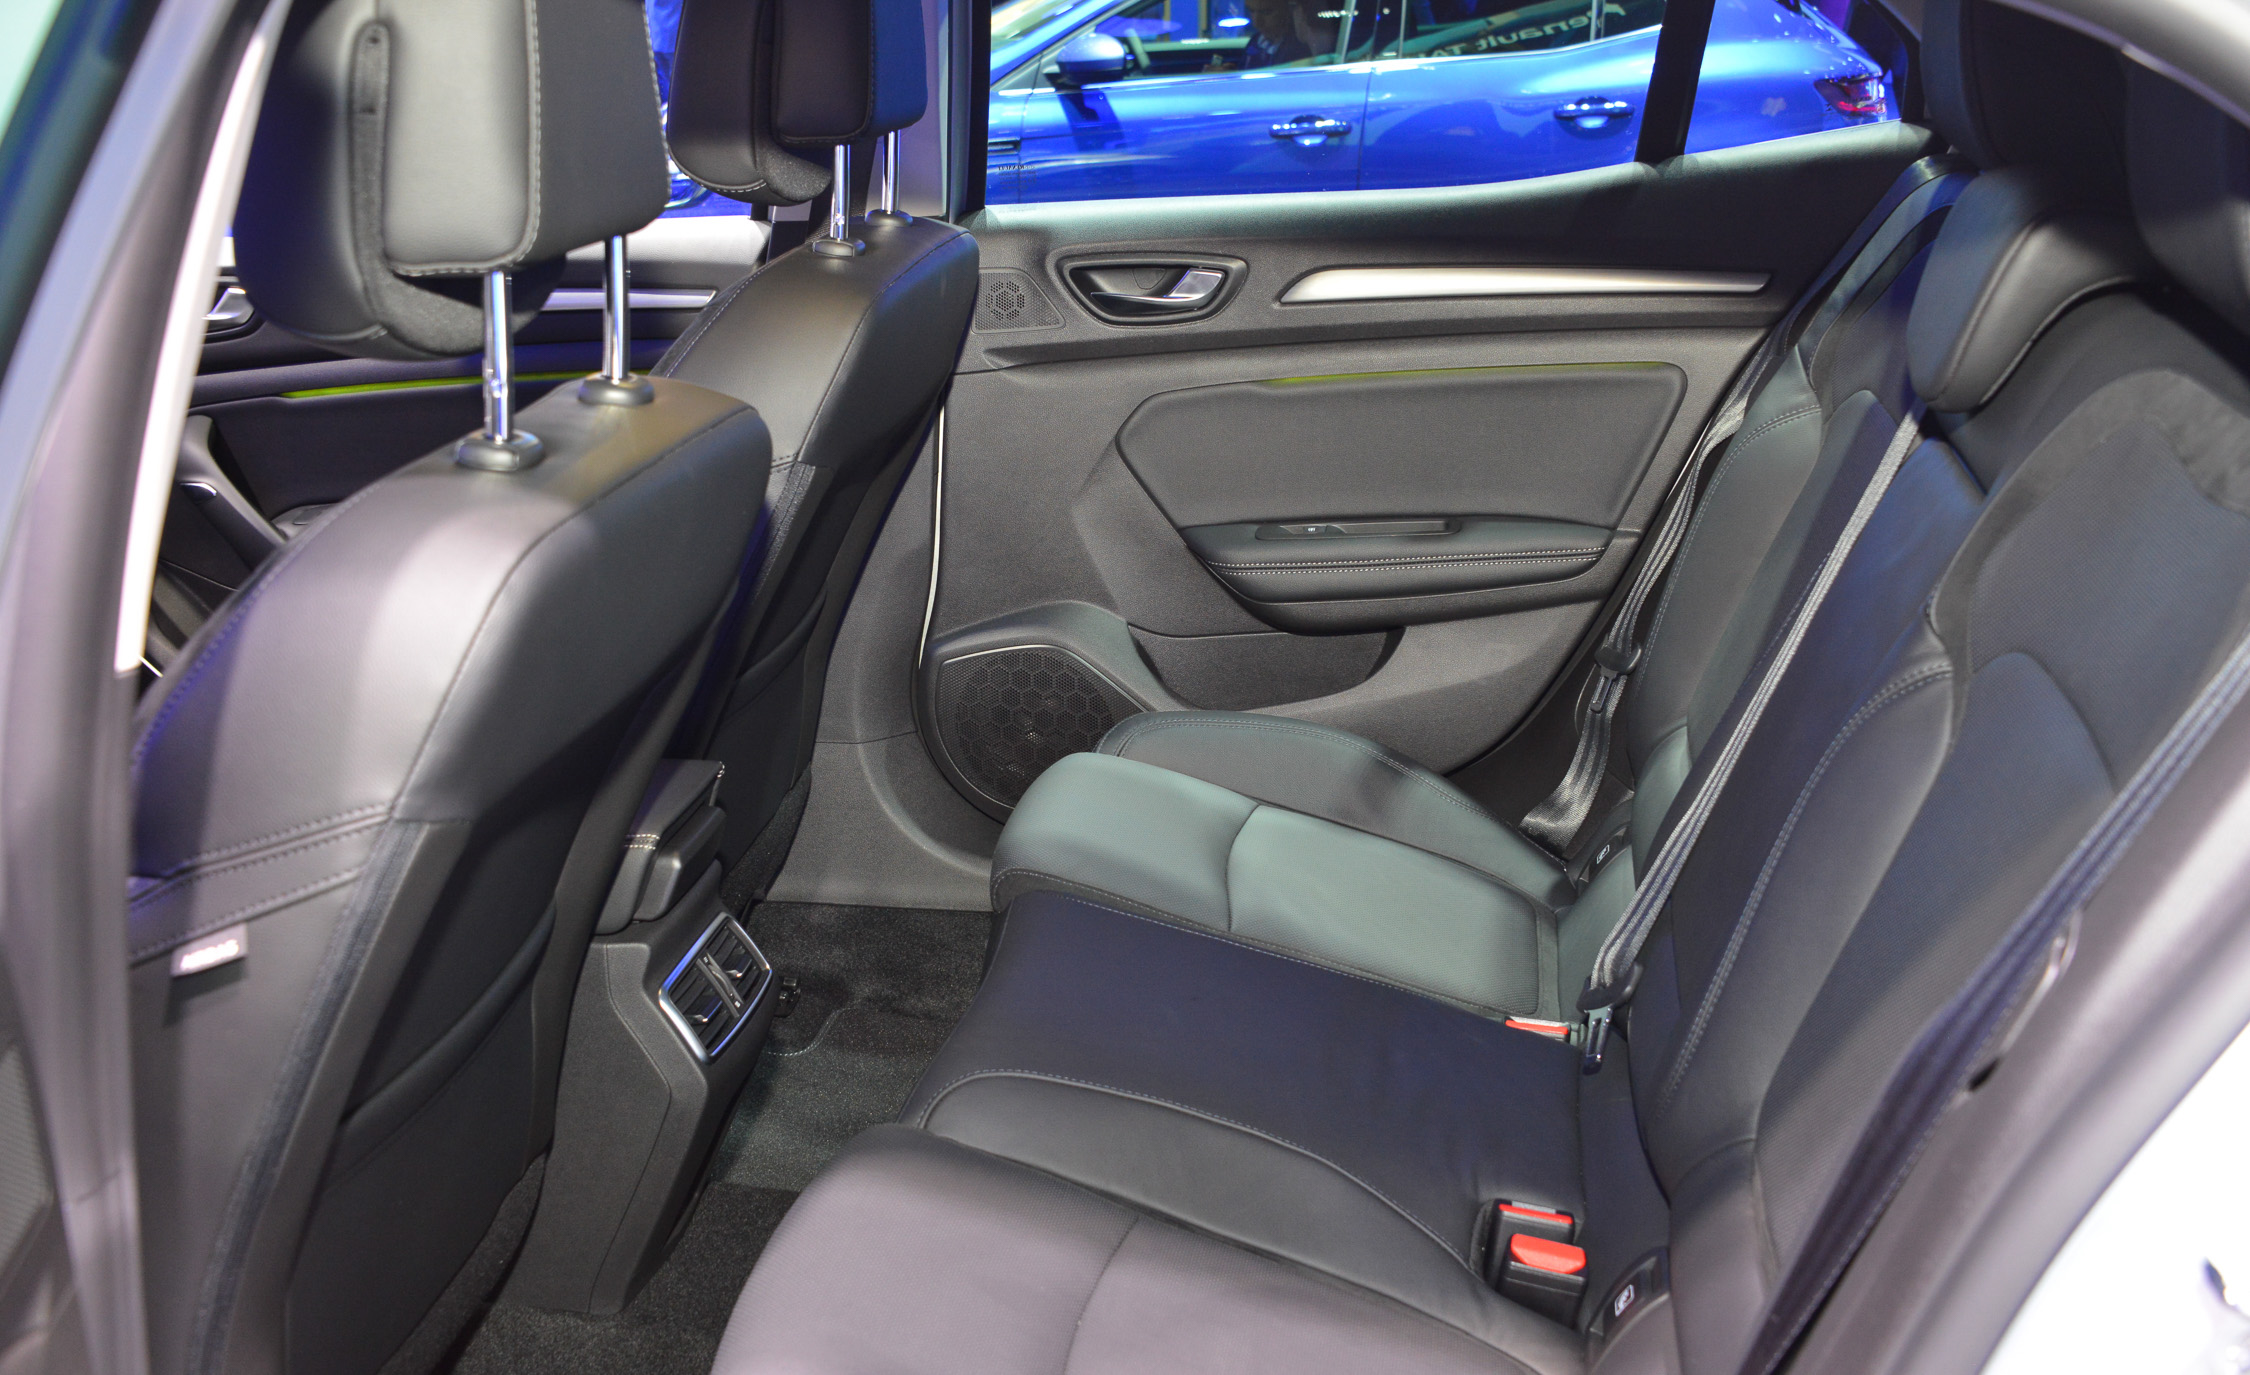 2016 Renault Megane Rear Seats Interior